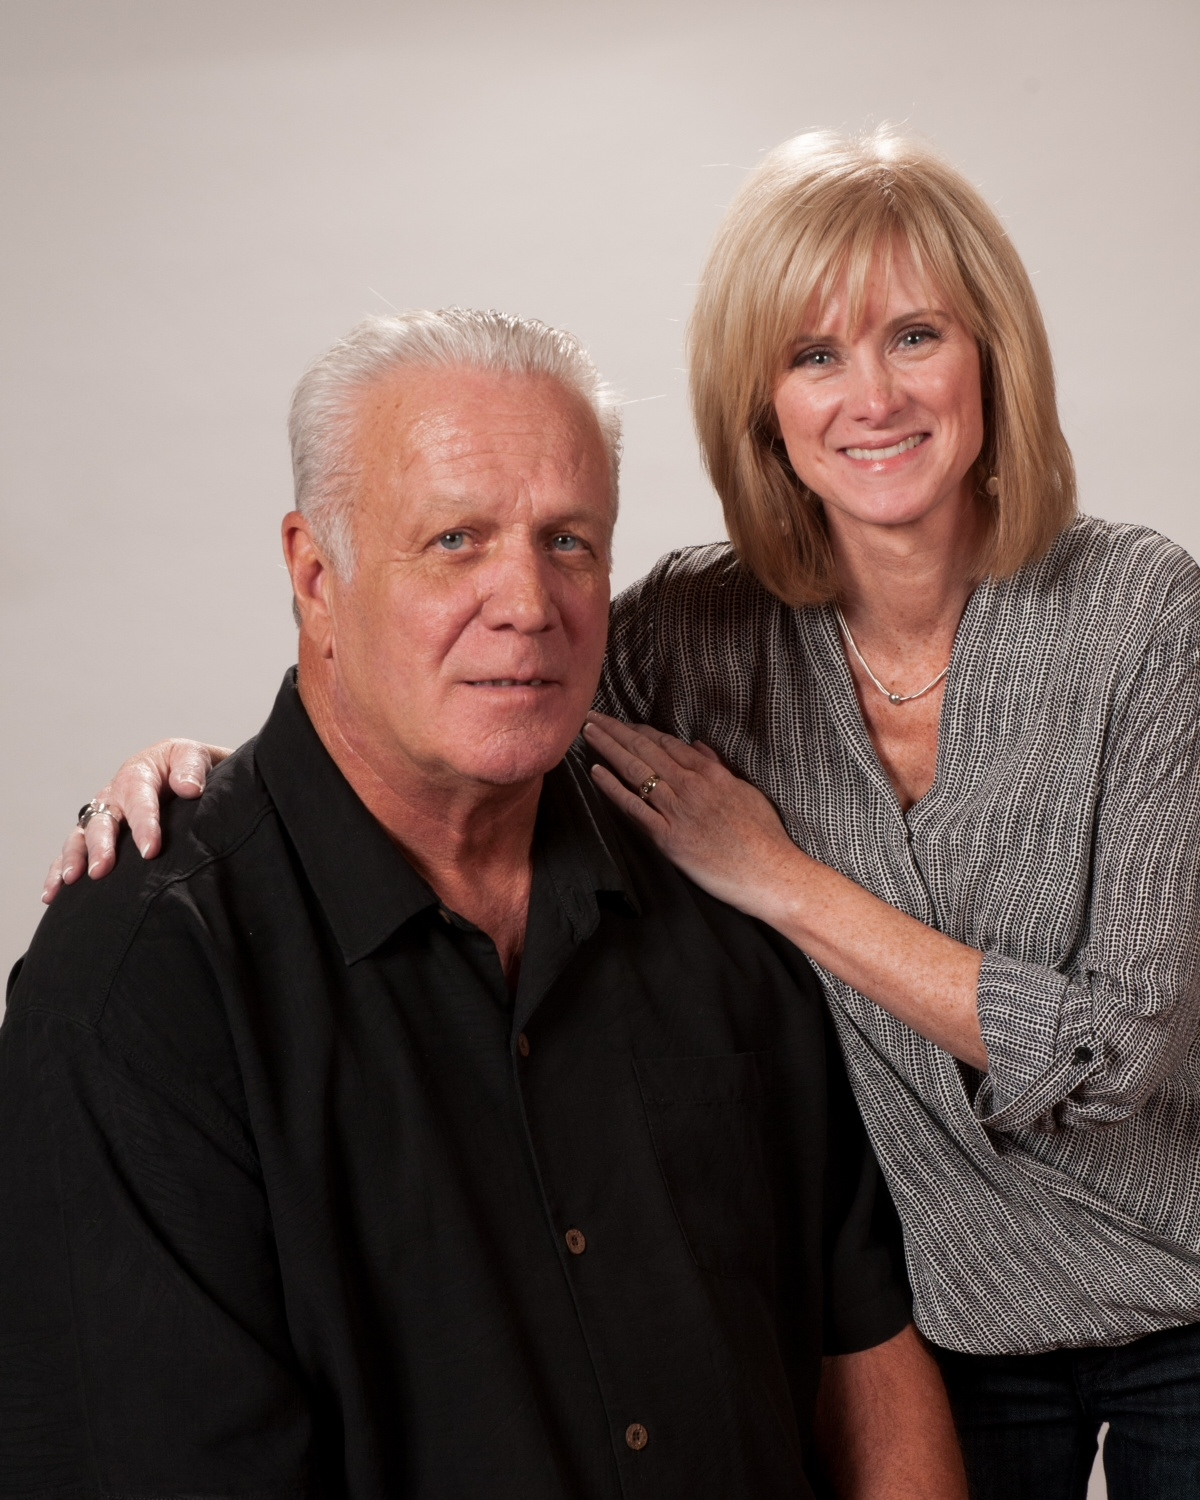 Jim and Michelle Nelson Realtor